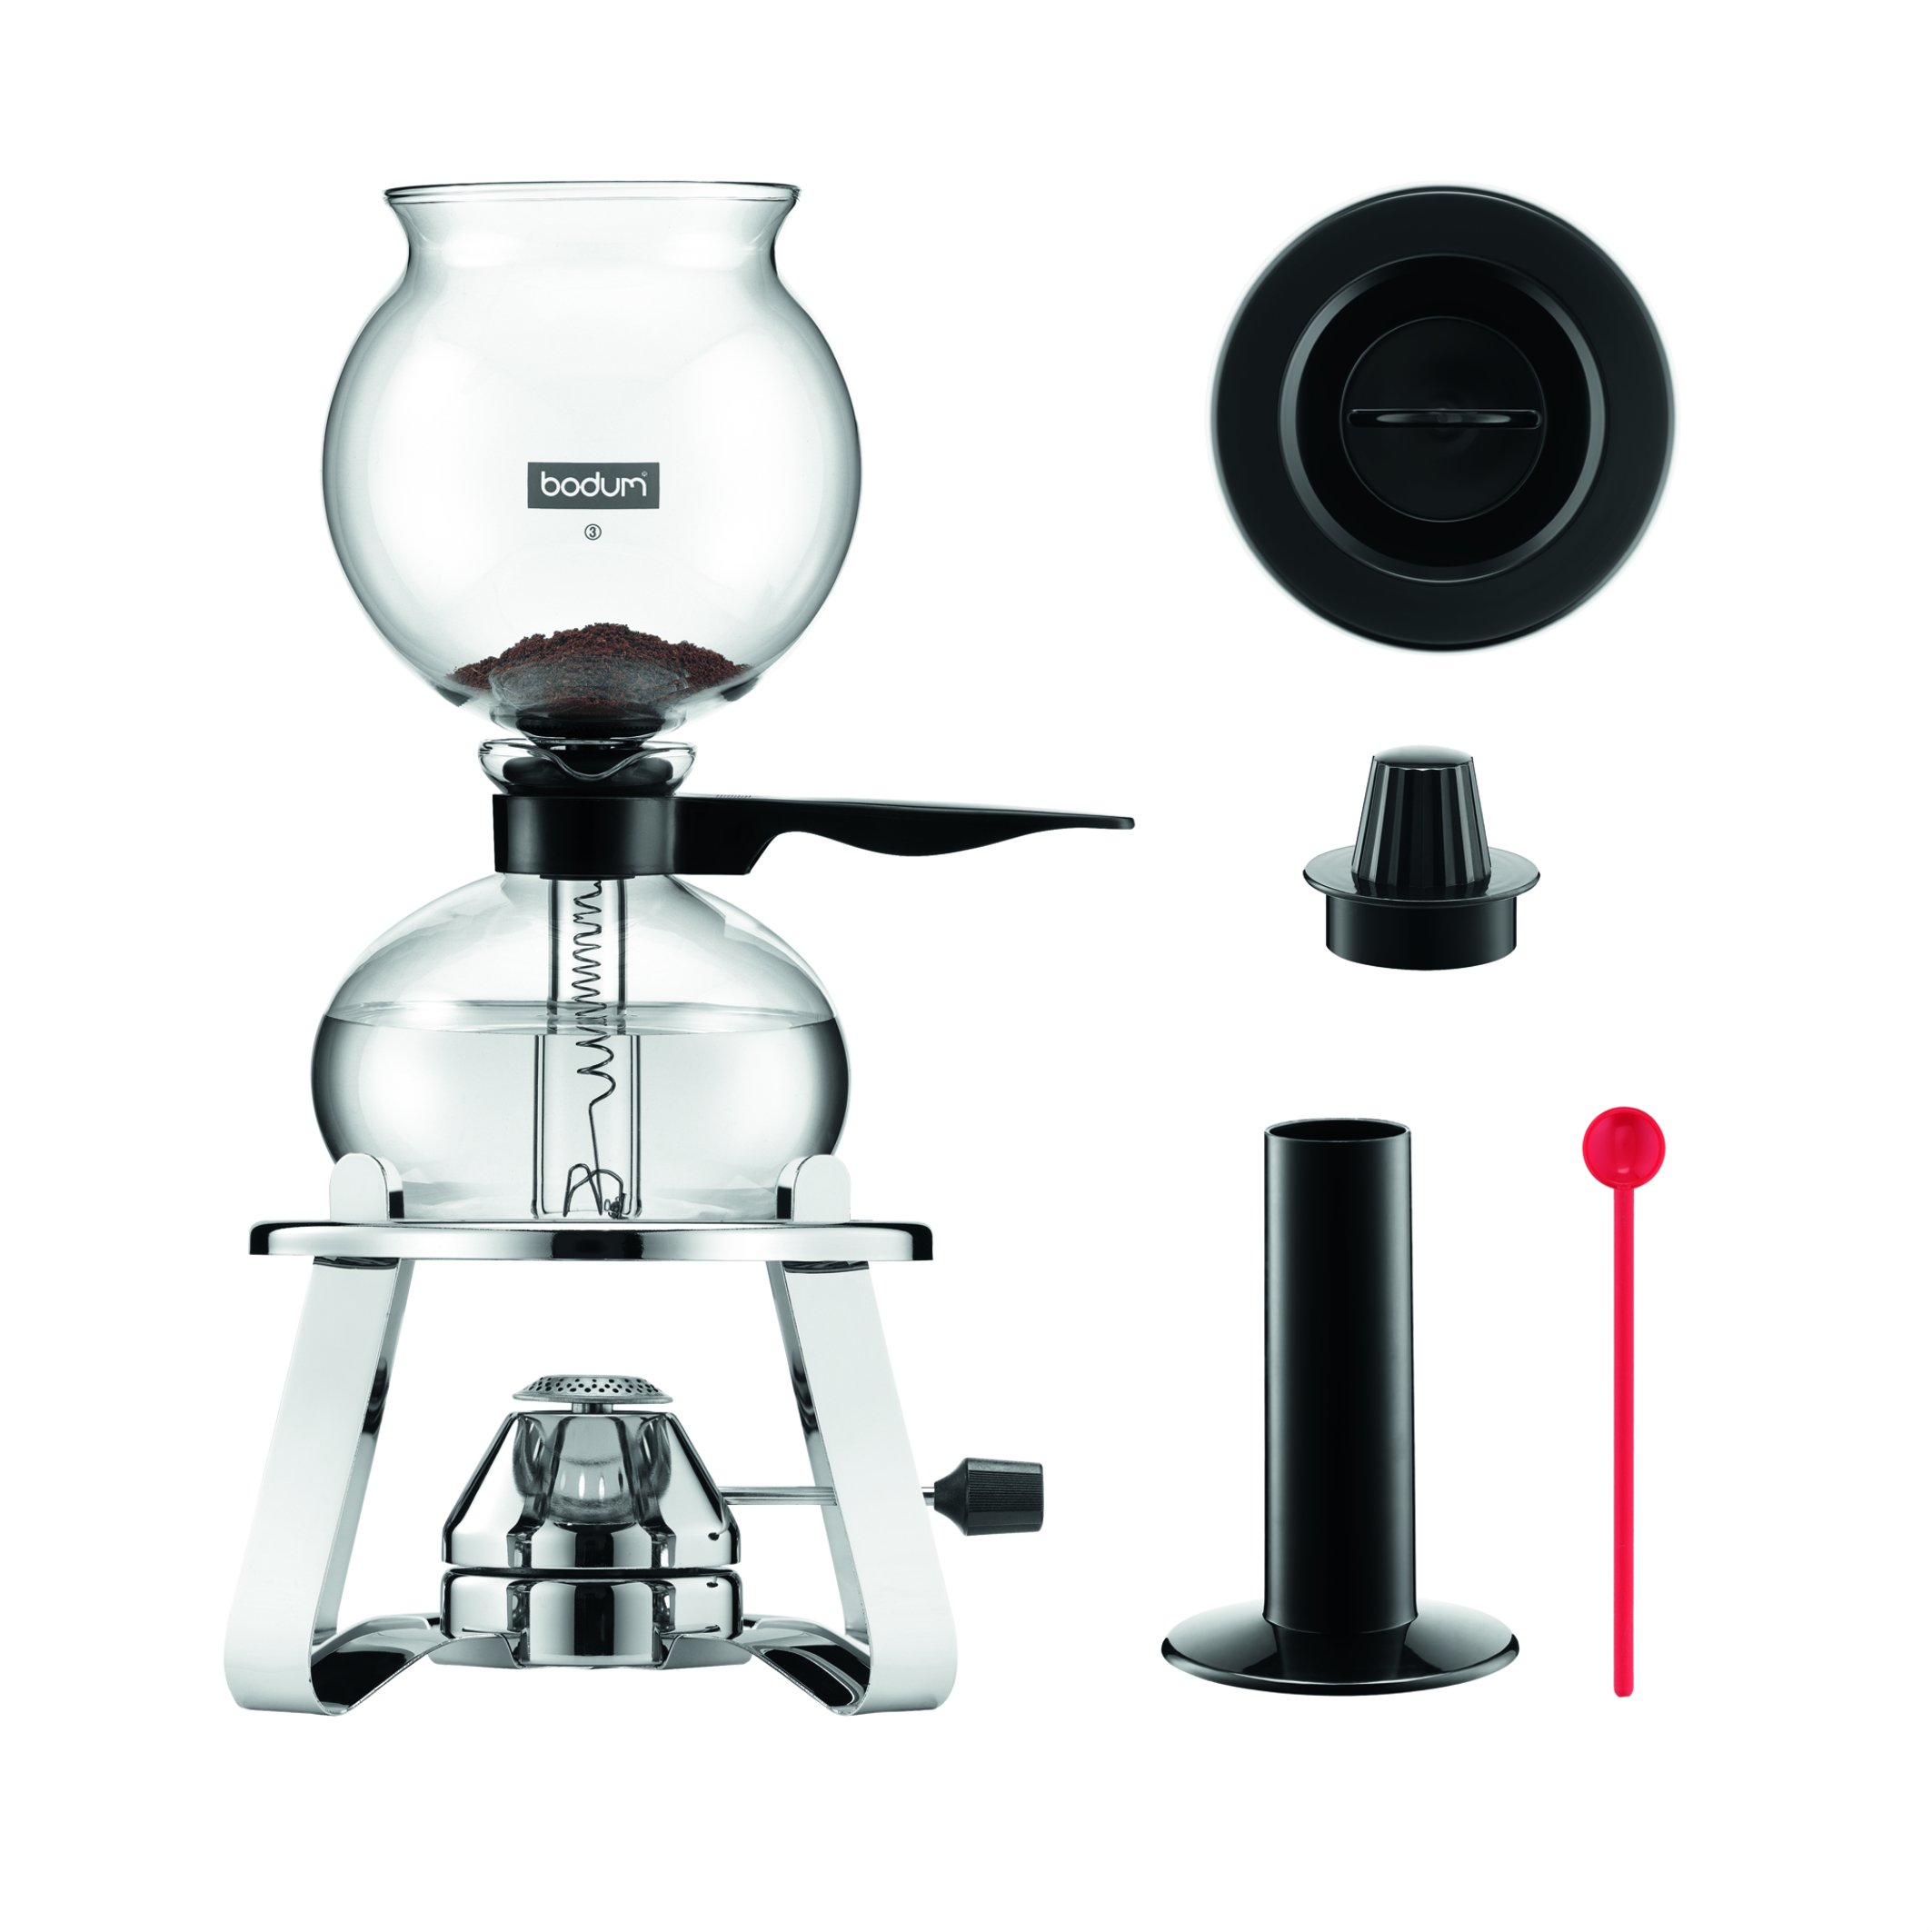 Bodum K1218-16 Pebo Vacuum Coffee Maker with Burner & Accessories, Black, 34 oz by Bodum